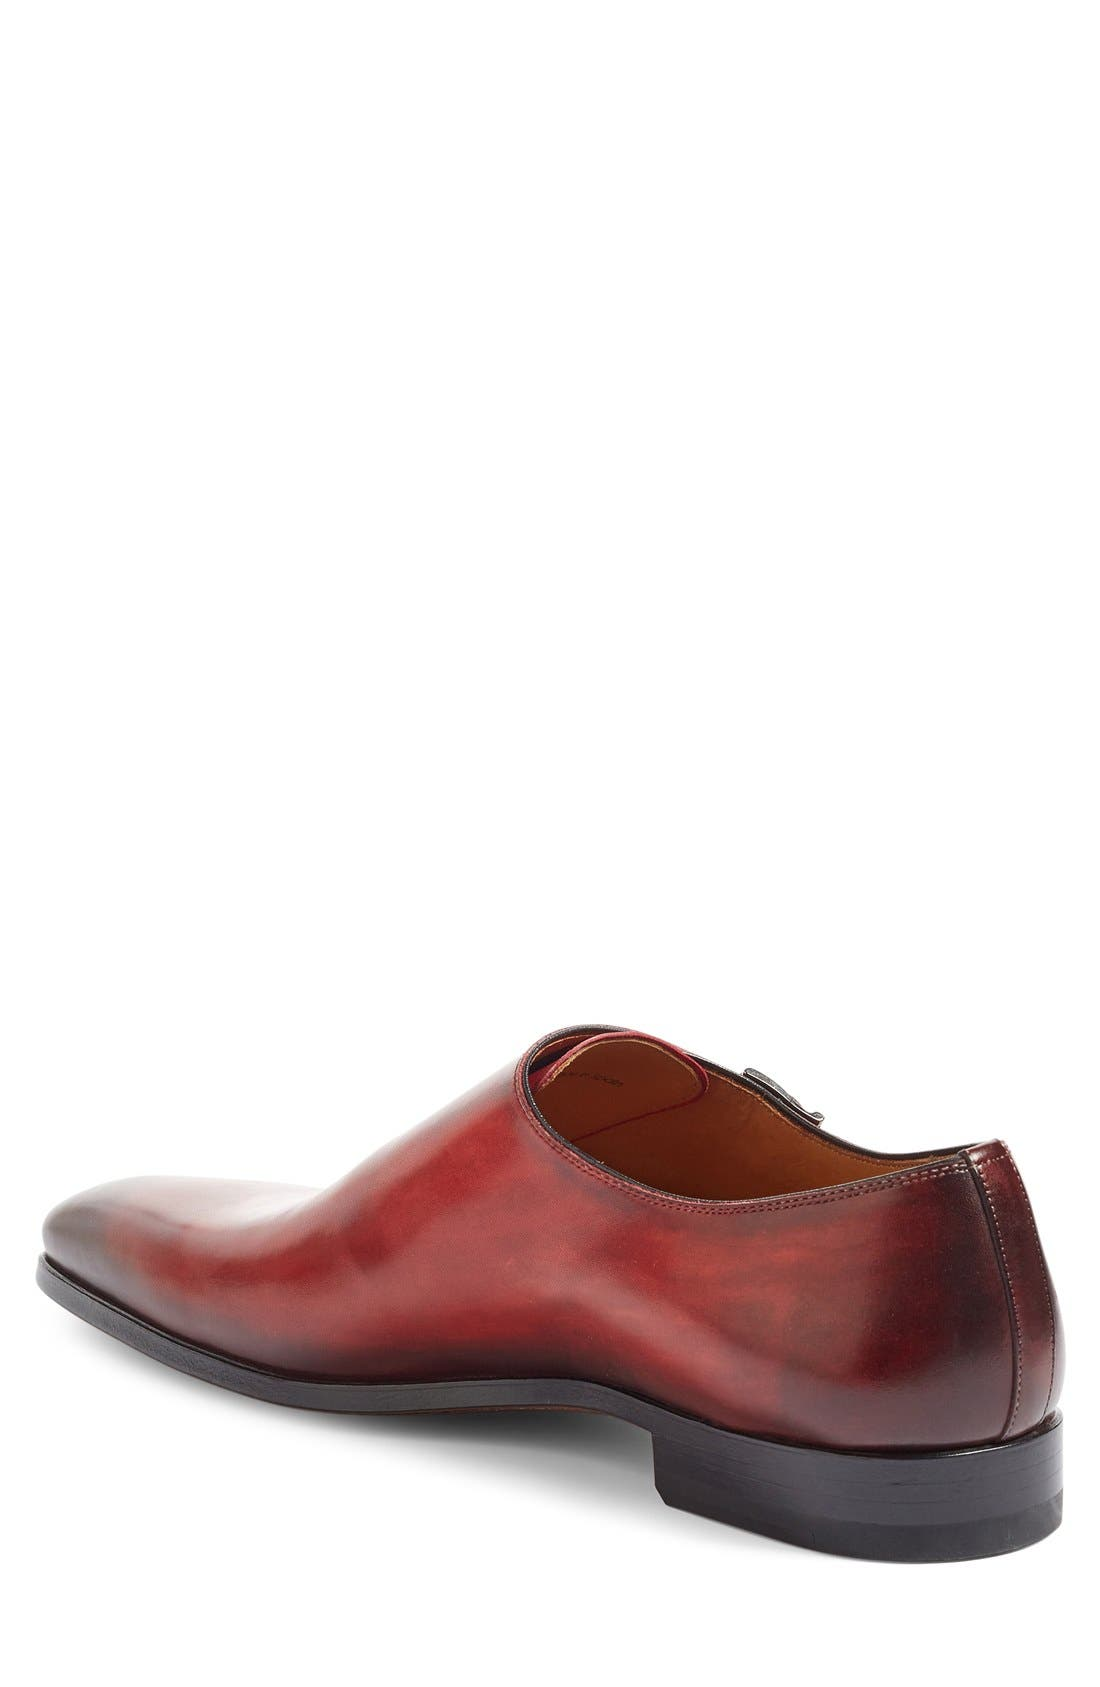 Jamin Double Monk Strap Shoe,                             Alternate thumbnail 2, color,                             Red Leather